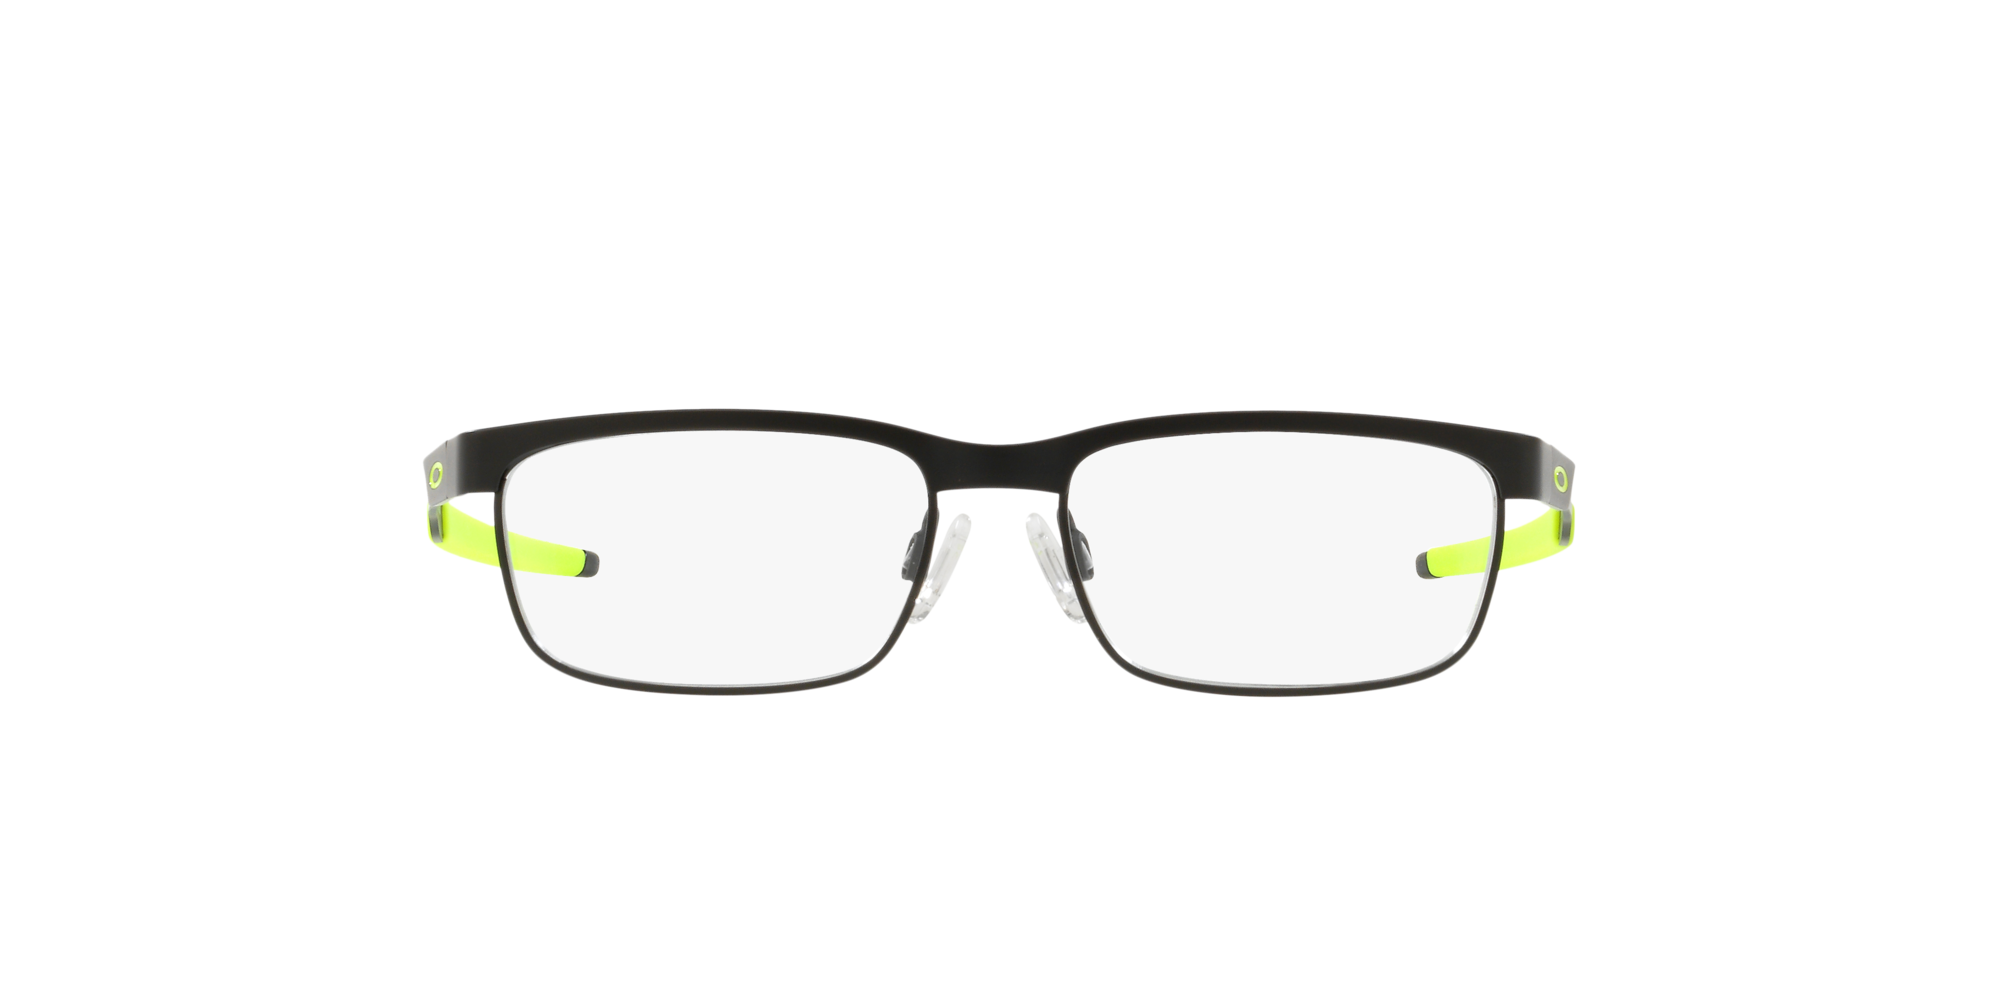 Image for OY3002 STEEL PLATE XS from LensCrafters | Glasses, Prescription Glasses Online, Eyewear